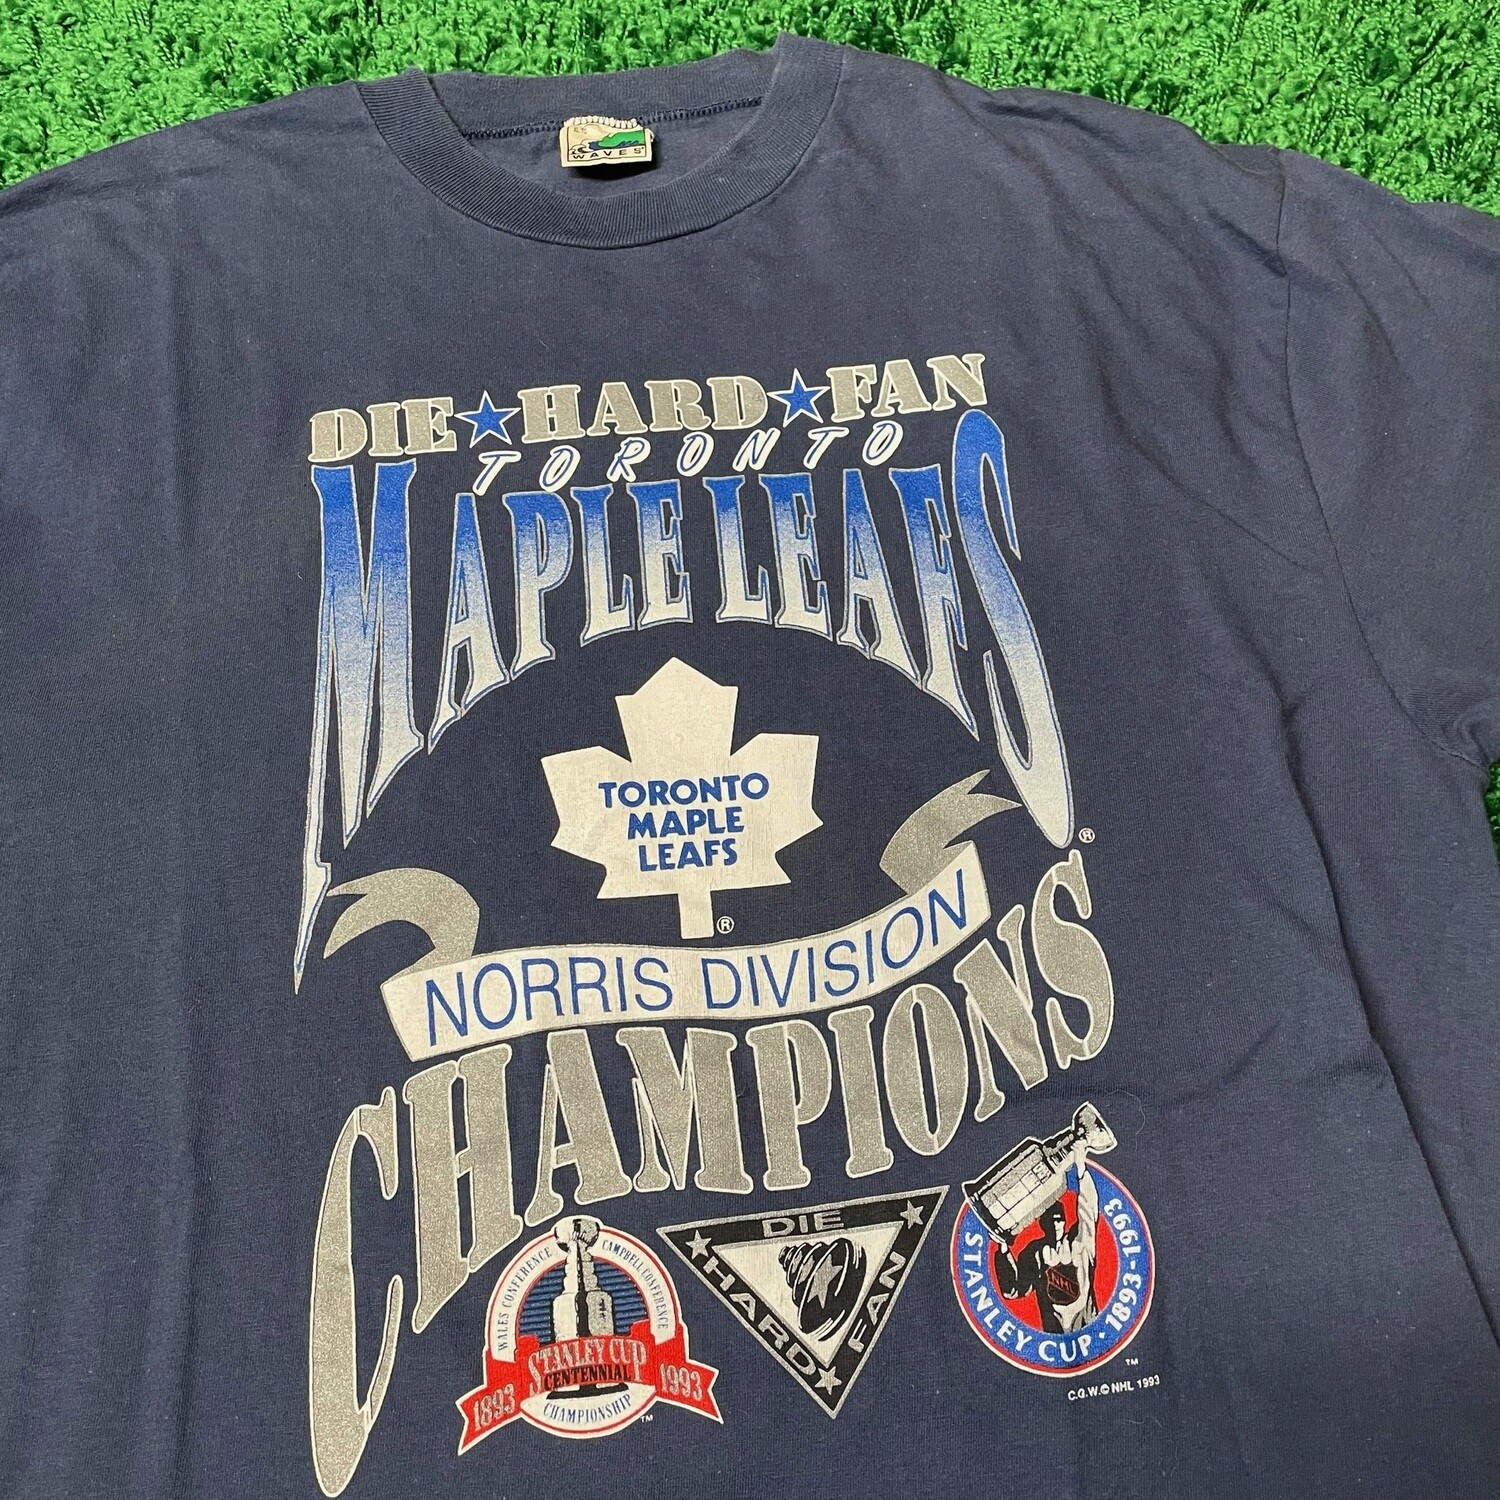 Toronto Maple Leafs Division Champions Size XL